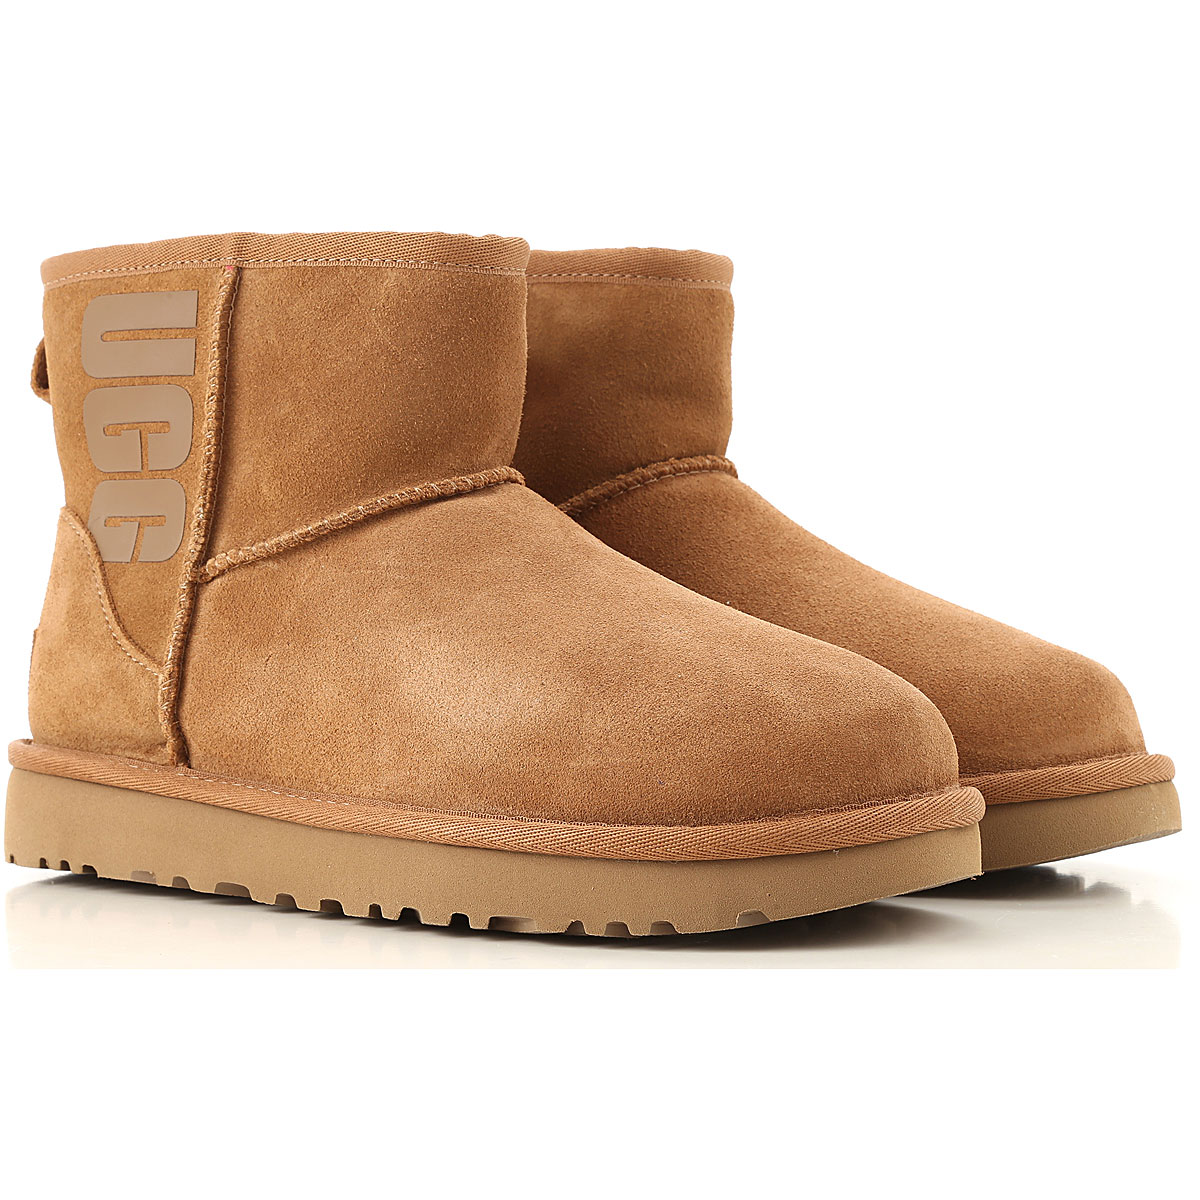 UGG Boots for Women, Booties On Sale, Brown, Wool, 2019, USA 5 UK 3 5 EU 36 JAPAN 220 USA 7 UK 5 5 EU 38 JAPAN 240 USA 8 UK 6 5 EU 39 JAPAN